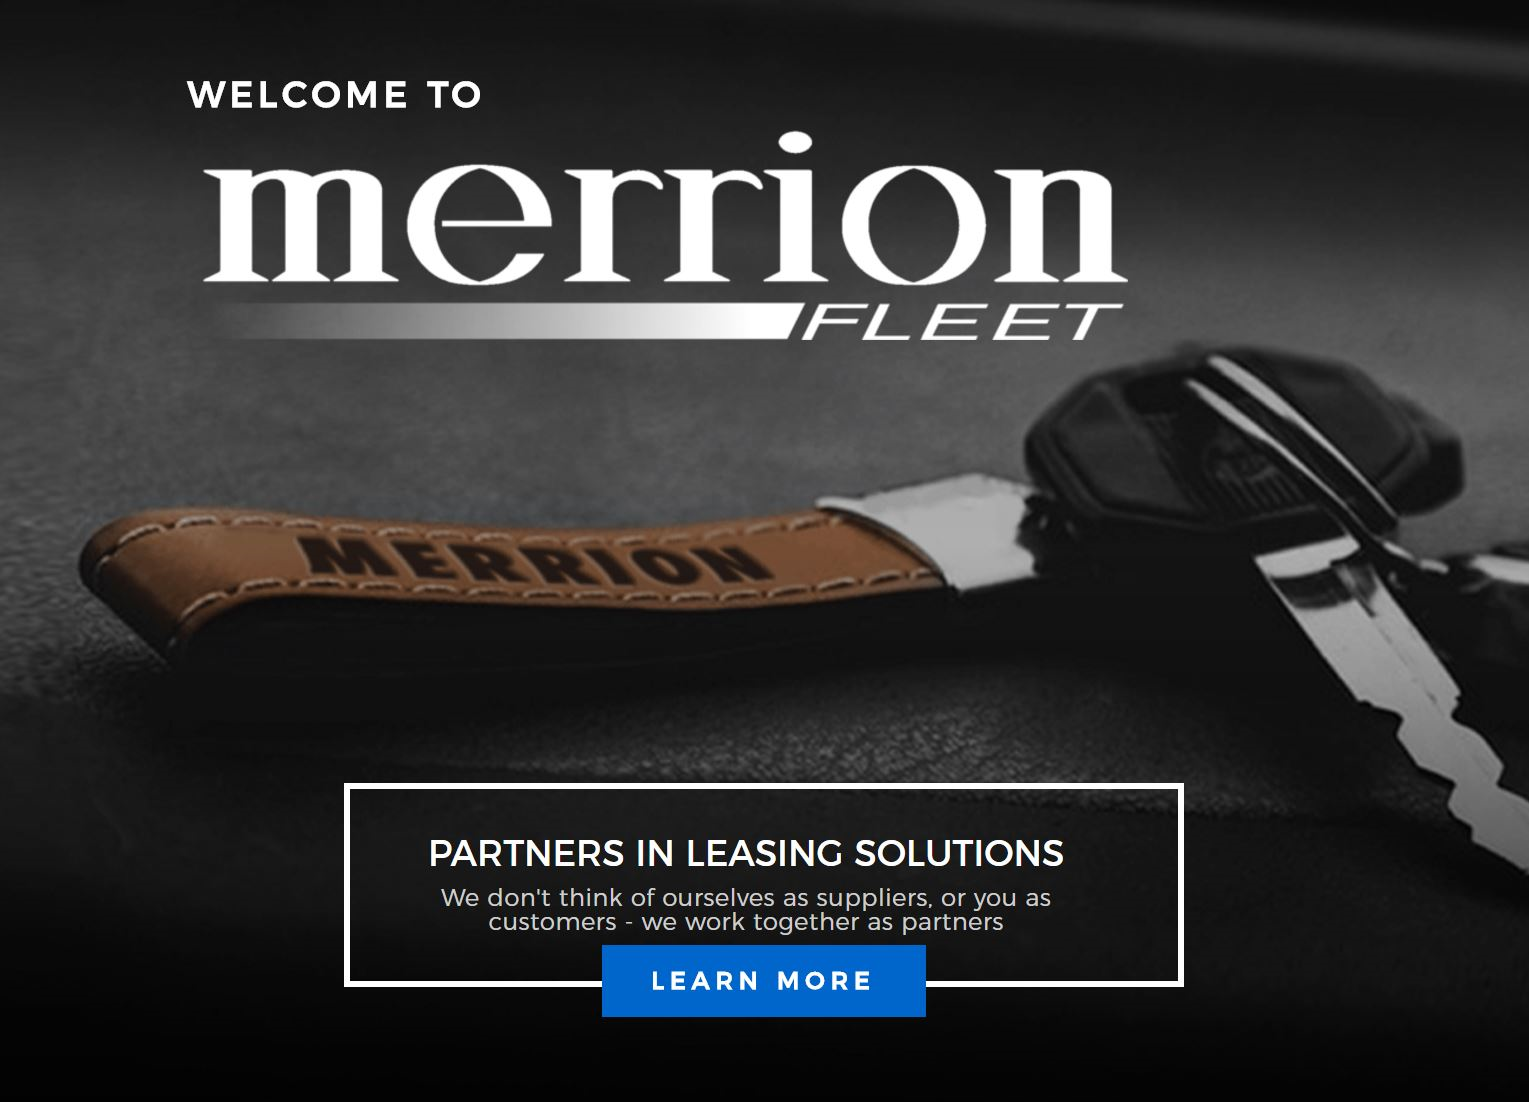 Merrion Fleet Launches New Website